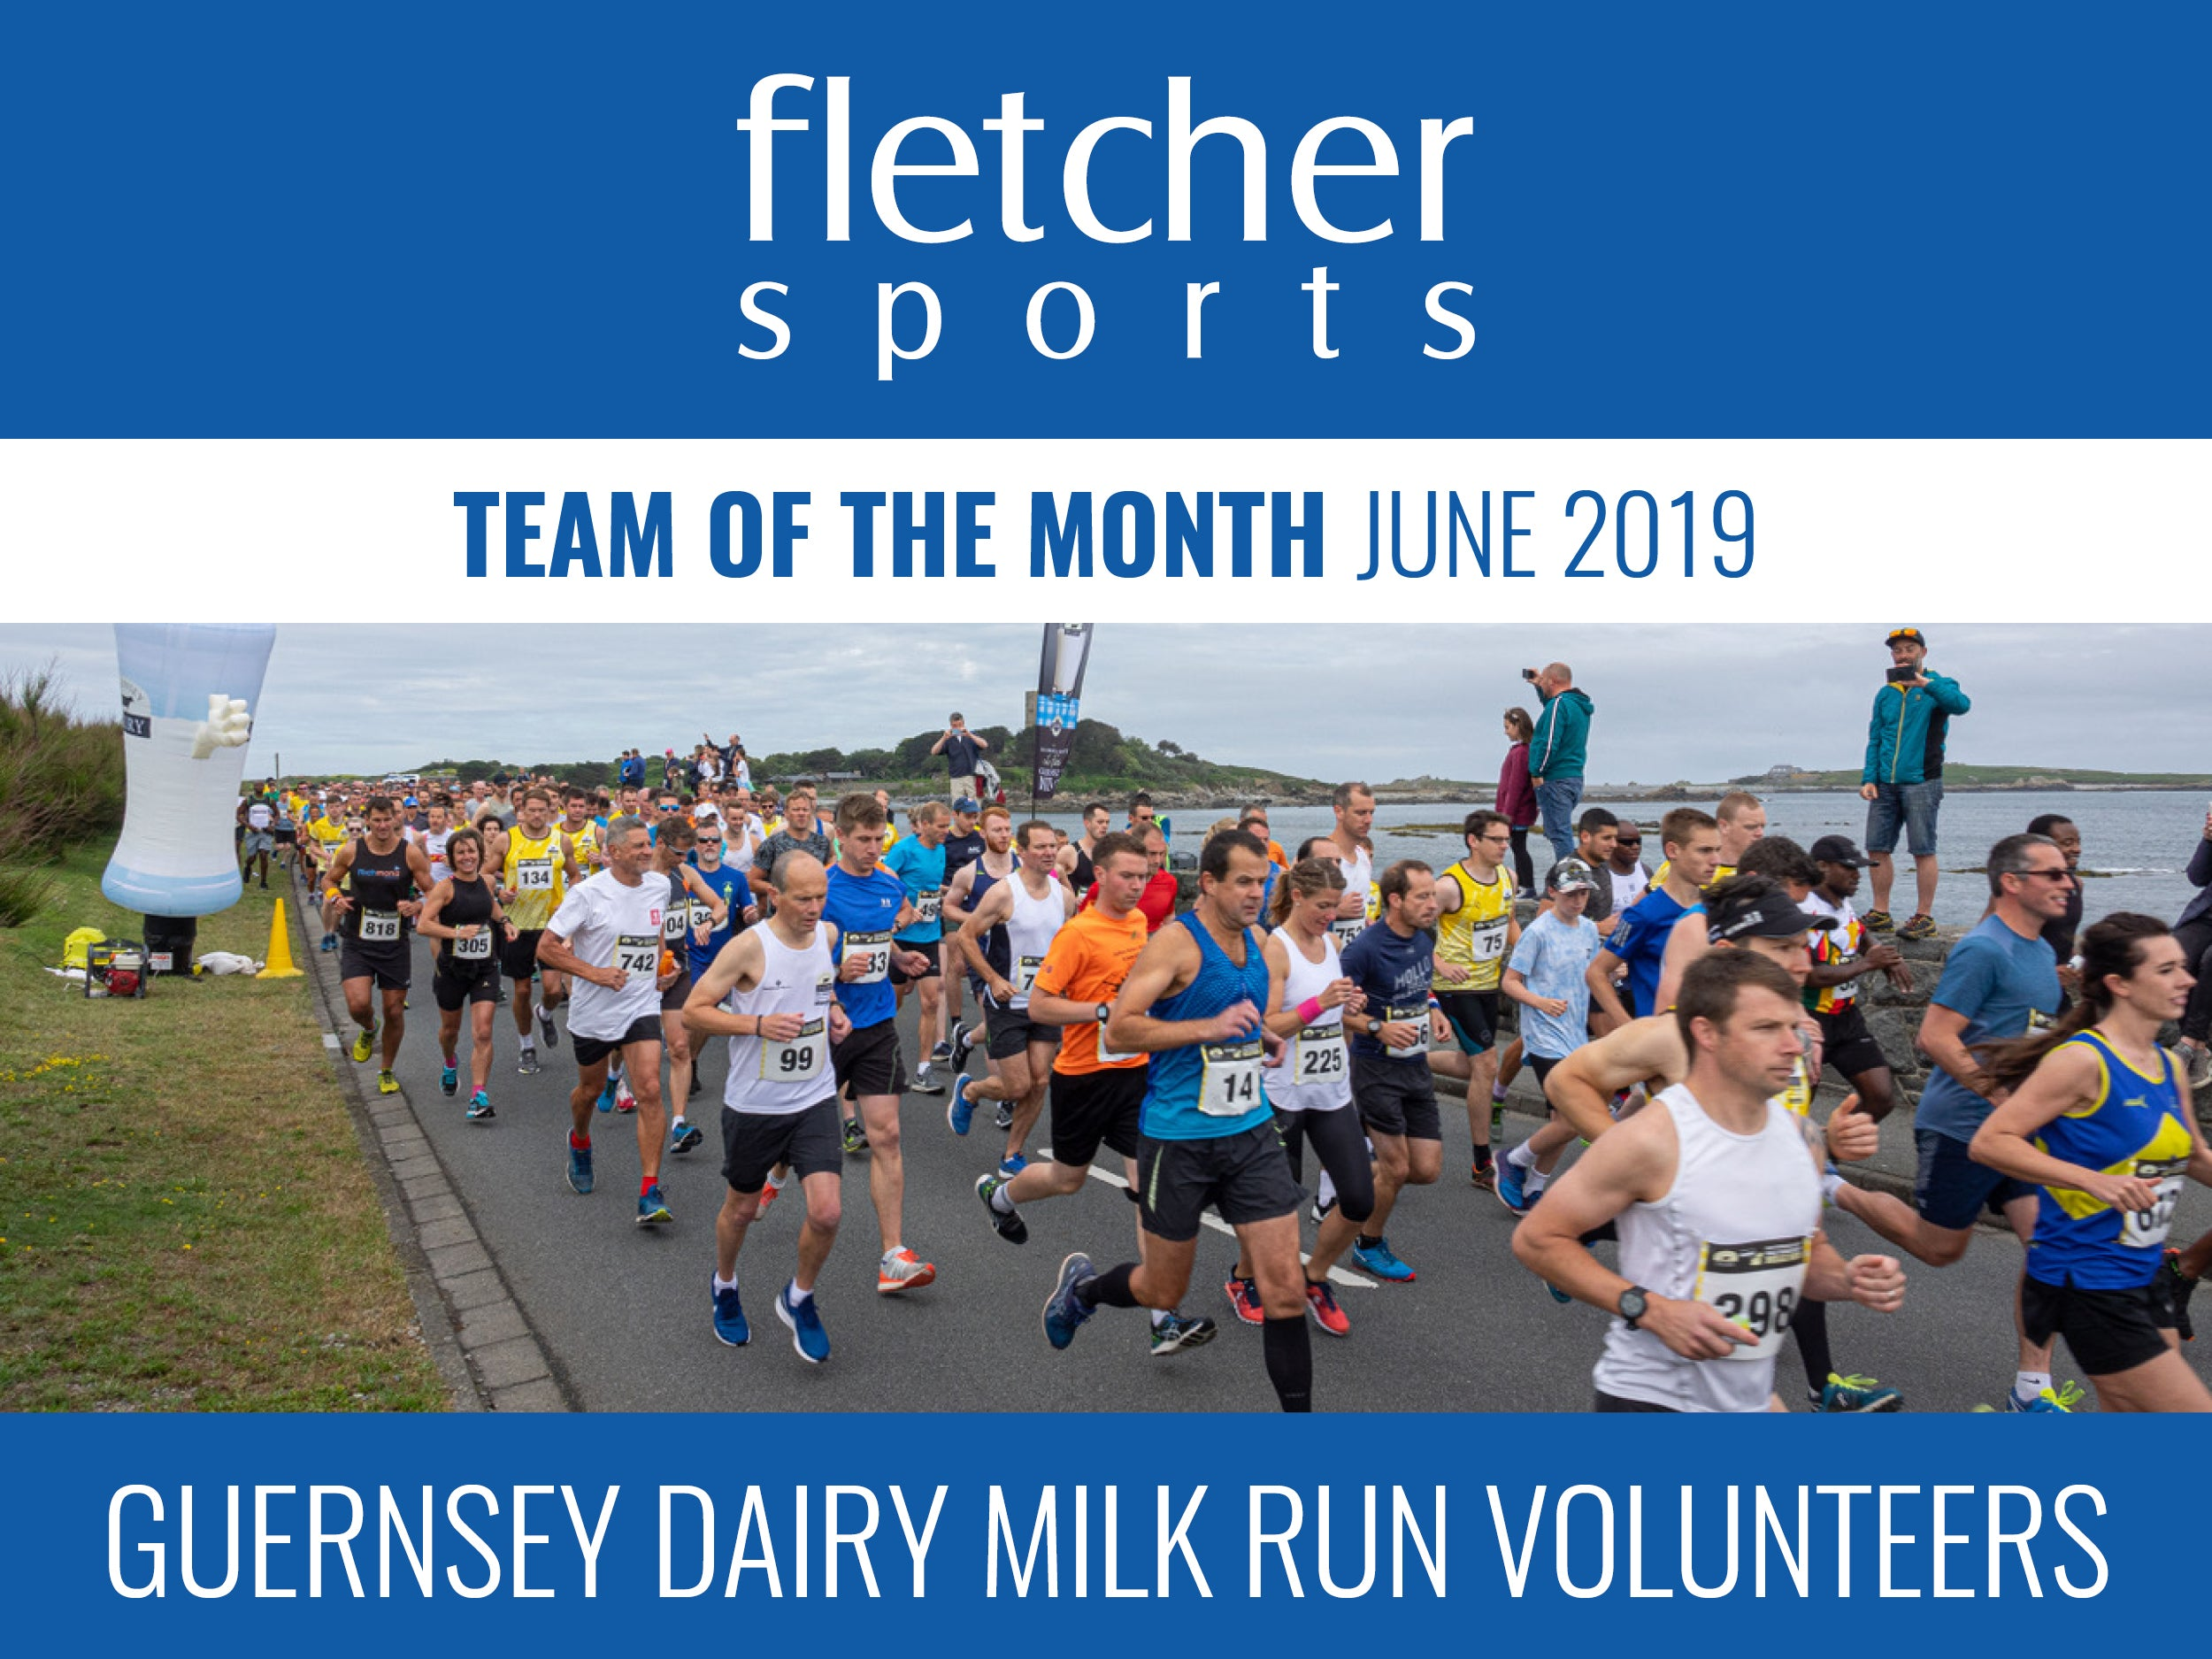 Team of the Month for June - Guernsey Dairy Milk Run Volunteers